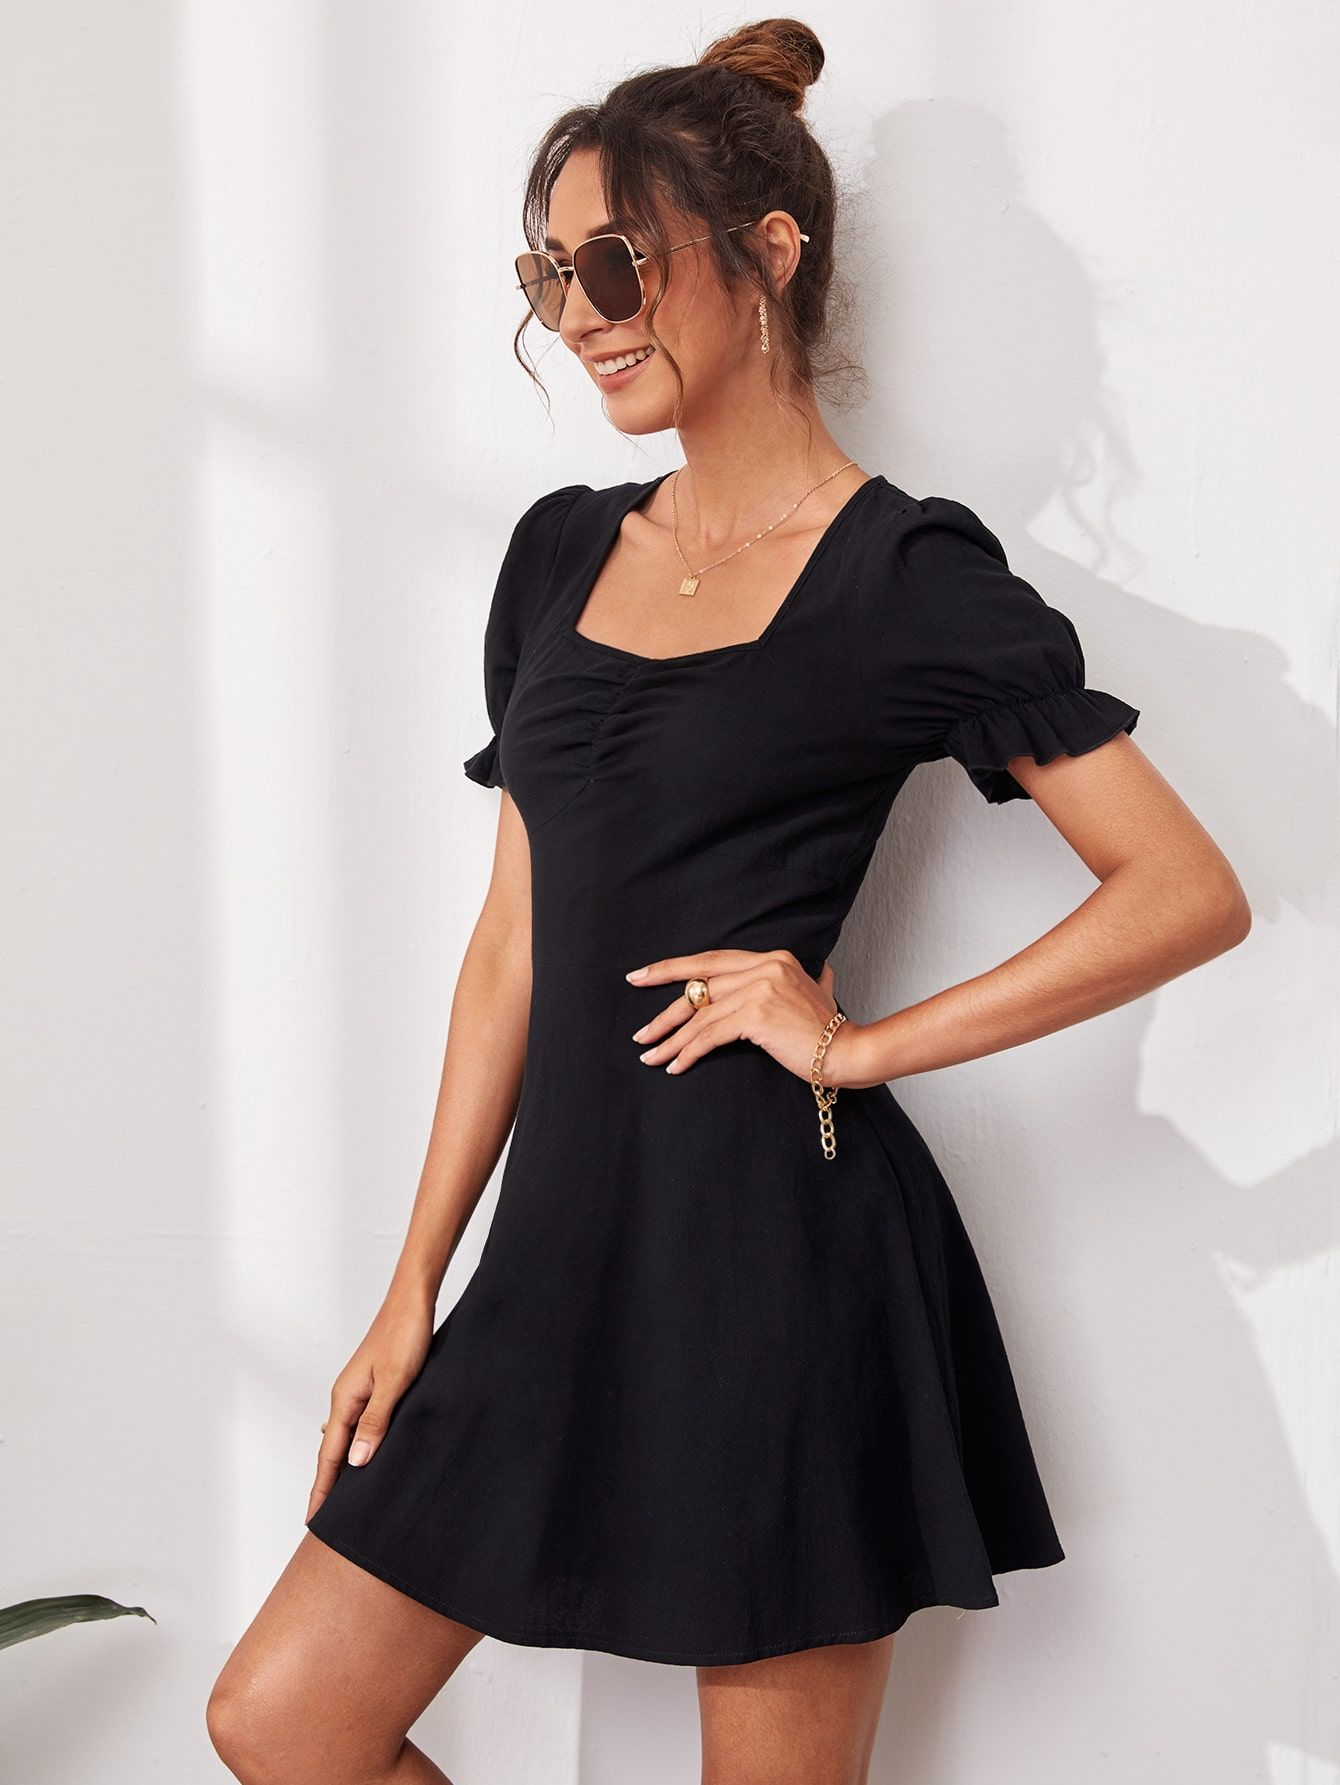 Sweetheart Neck Ruched Solid Dress Shein Usa Dresses Solid Dress Fashion [ 1785 x 1340 Pixel ]